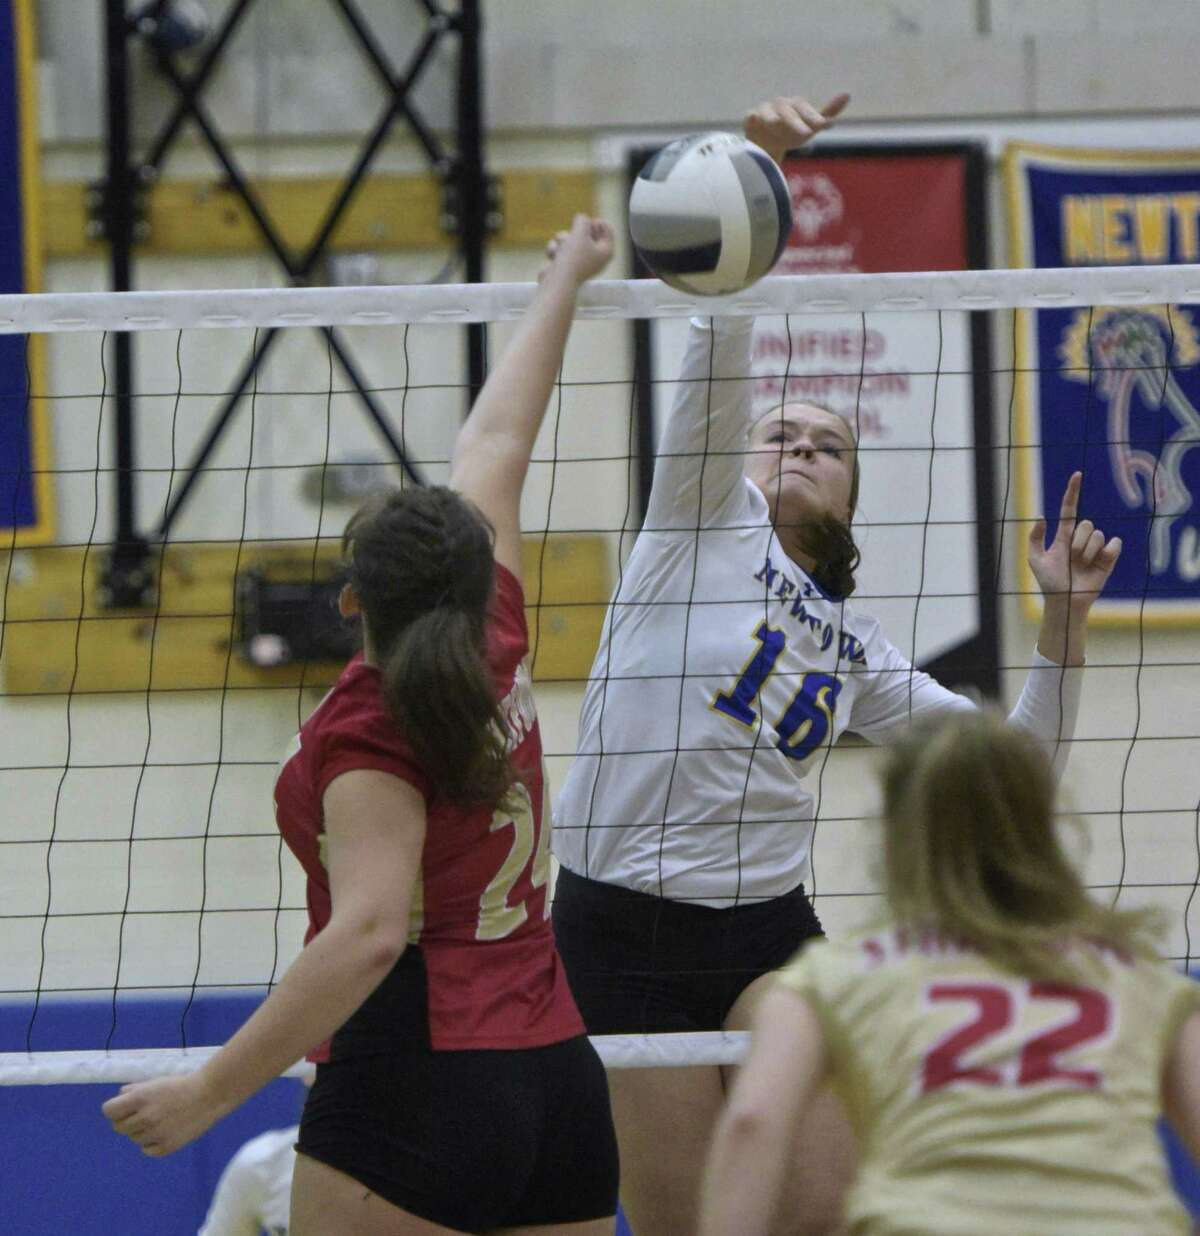 Newtown's Genevieve Murray (16) spikes the ball as Stratford's Samantha Carbone (24) goes up to try and block in the girls volleyball match between Stratford and Newtown high schools, Wednesday afternoon, October 11, 2017, at Newtown High School, in Newtown, Conn.